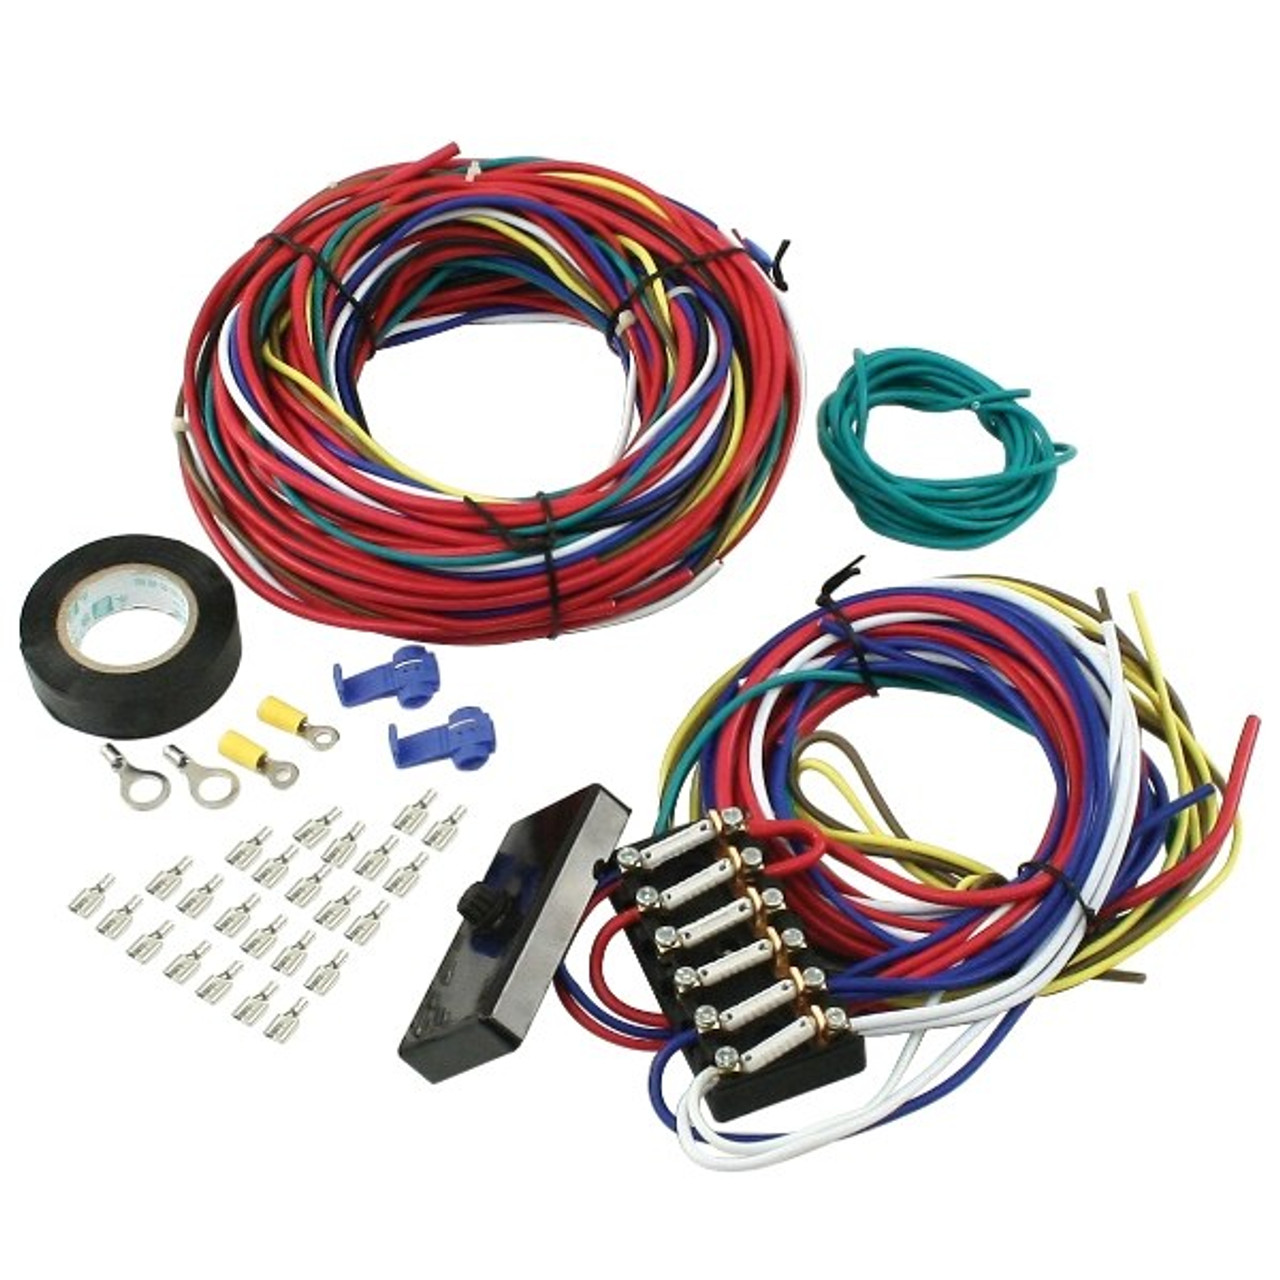 large AC971000__14441.1421968365?c=2 buggy manx wiring harness dune buggy parts, sandrail parts, vw electrical wiring harness at gsmx.co